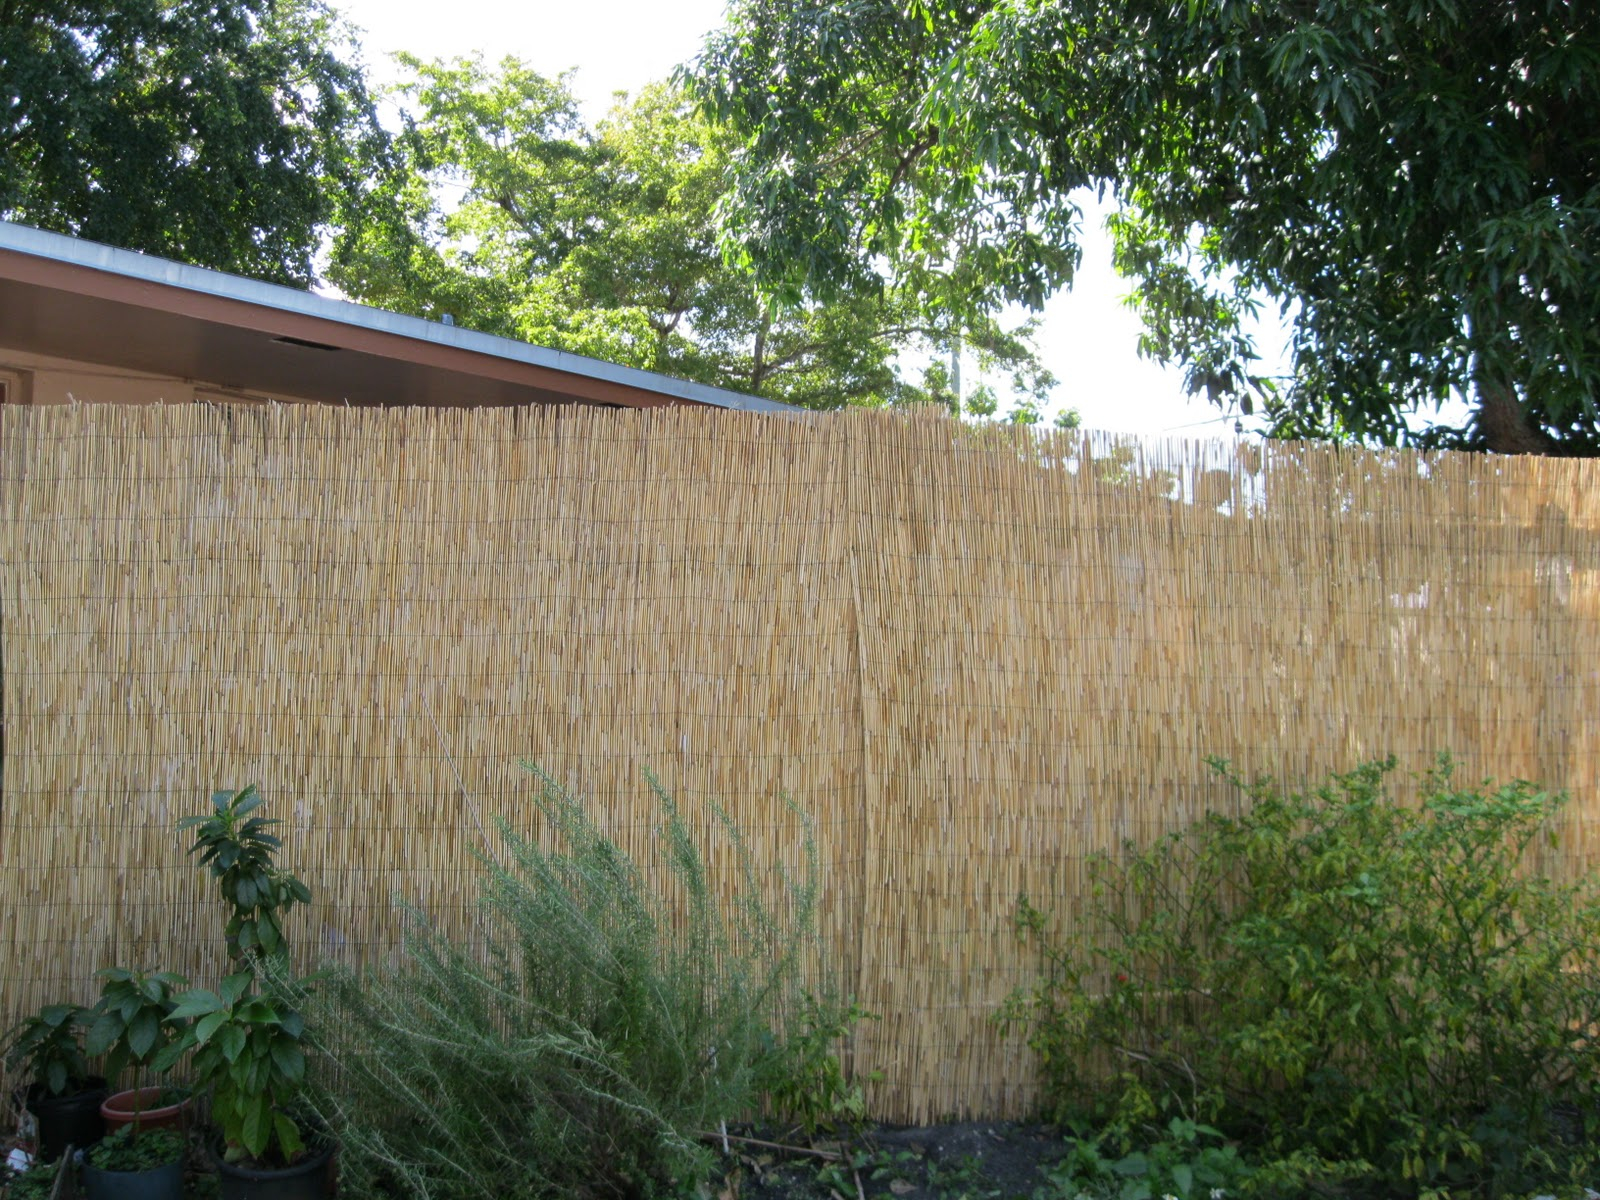 1 Landscaping Landscaping Ideas For Backyard X Scapes for 12 Smart Initiatives of How to Craft Backyard X Scapes Bamboo Fence